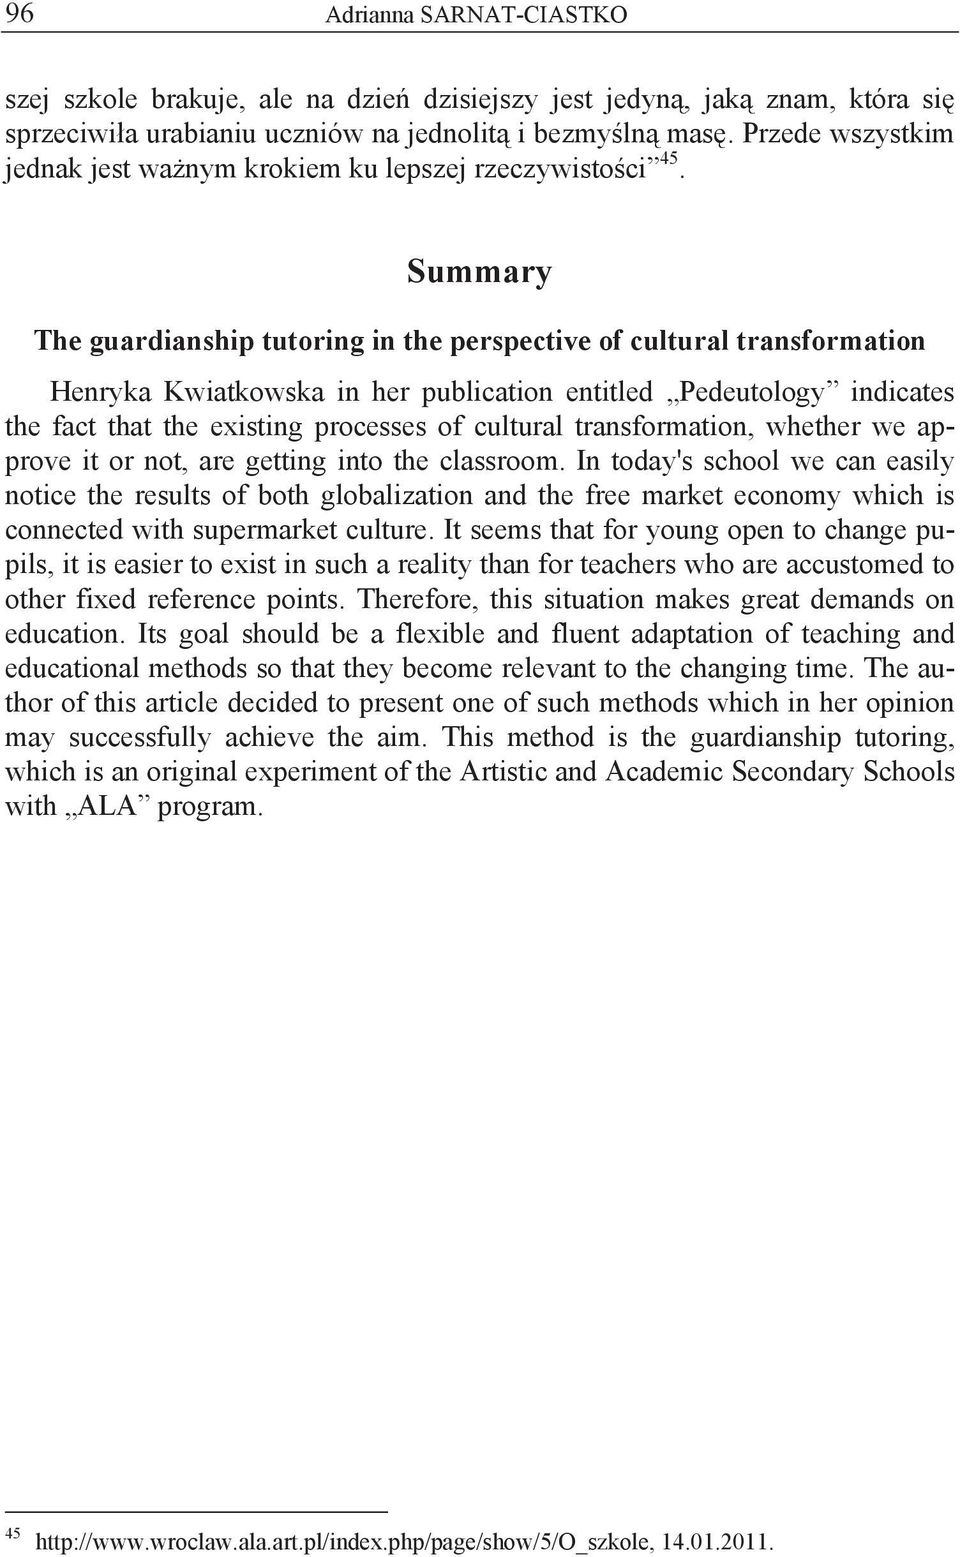 Summary The guardianship tutoring in the perspective of cultural transformation Henryka Kwiatkowska in her publication entitled Pedeutology indicates the fact that the existing processes of cultural